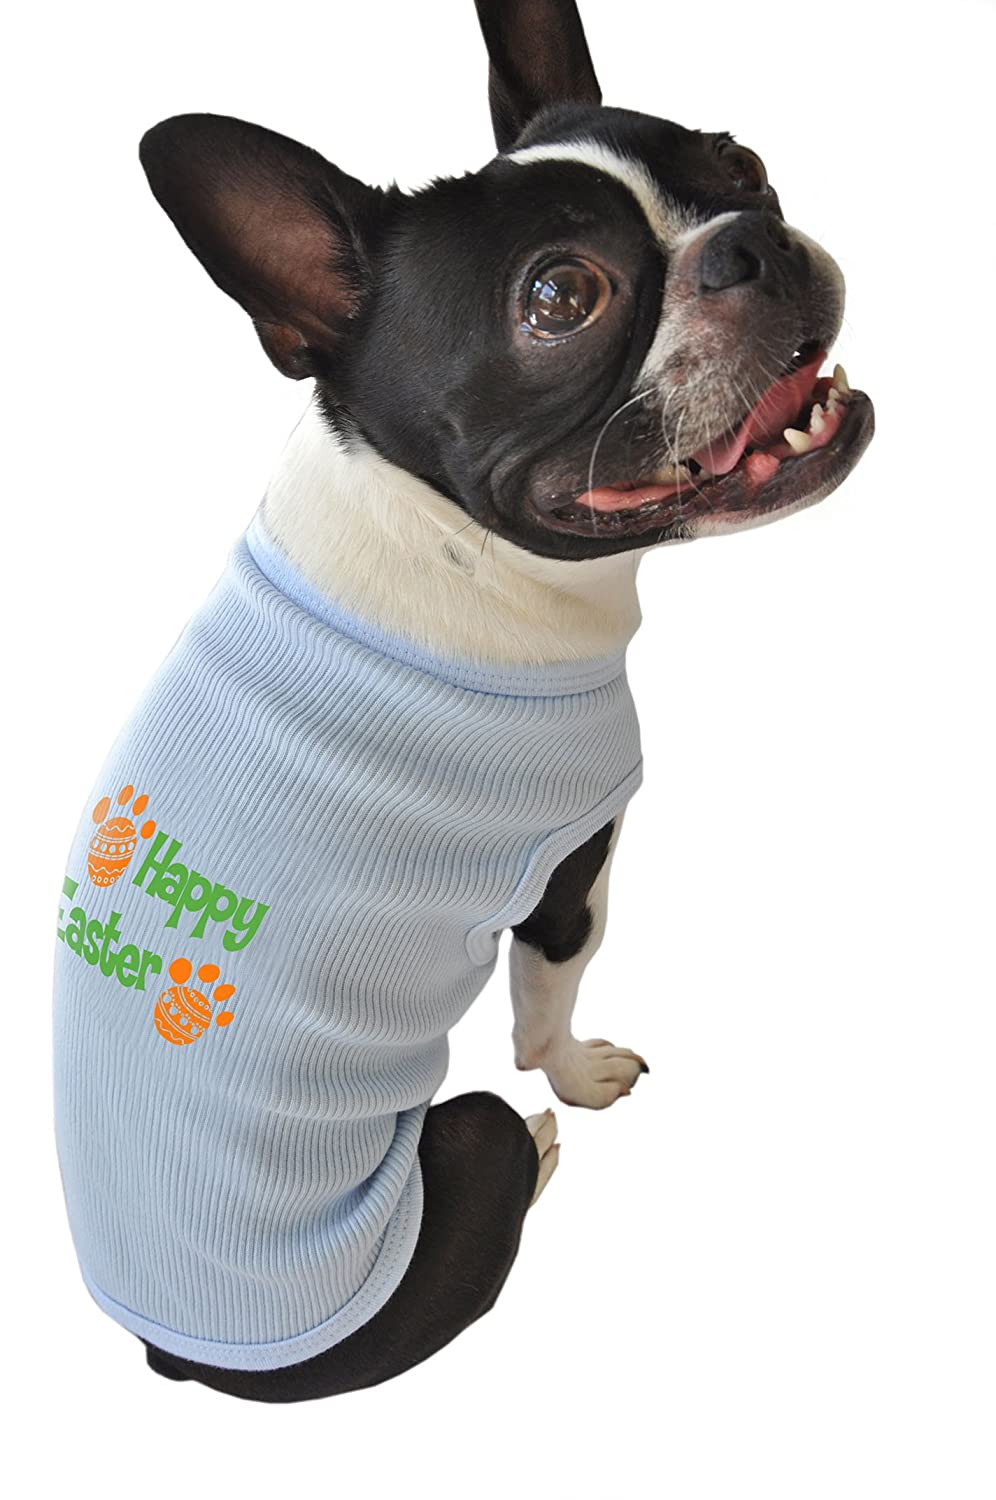 Ruff Ruff and Meow Extra-Small Dog Tank Top, Happy Easter, bluee